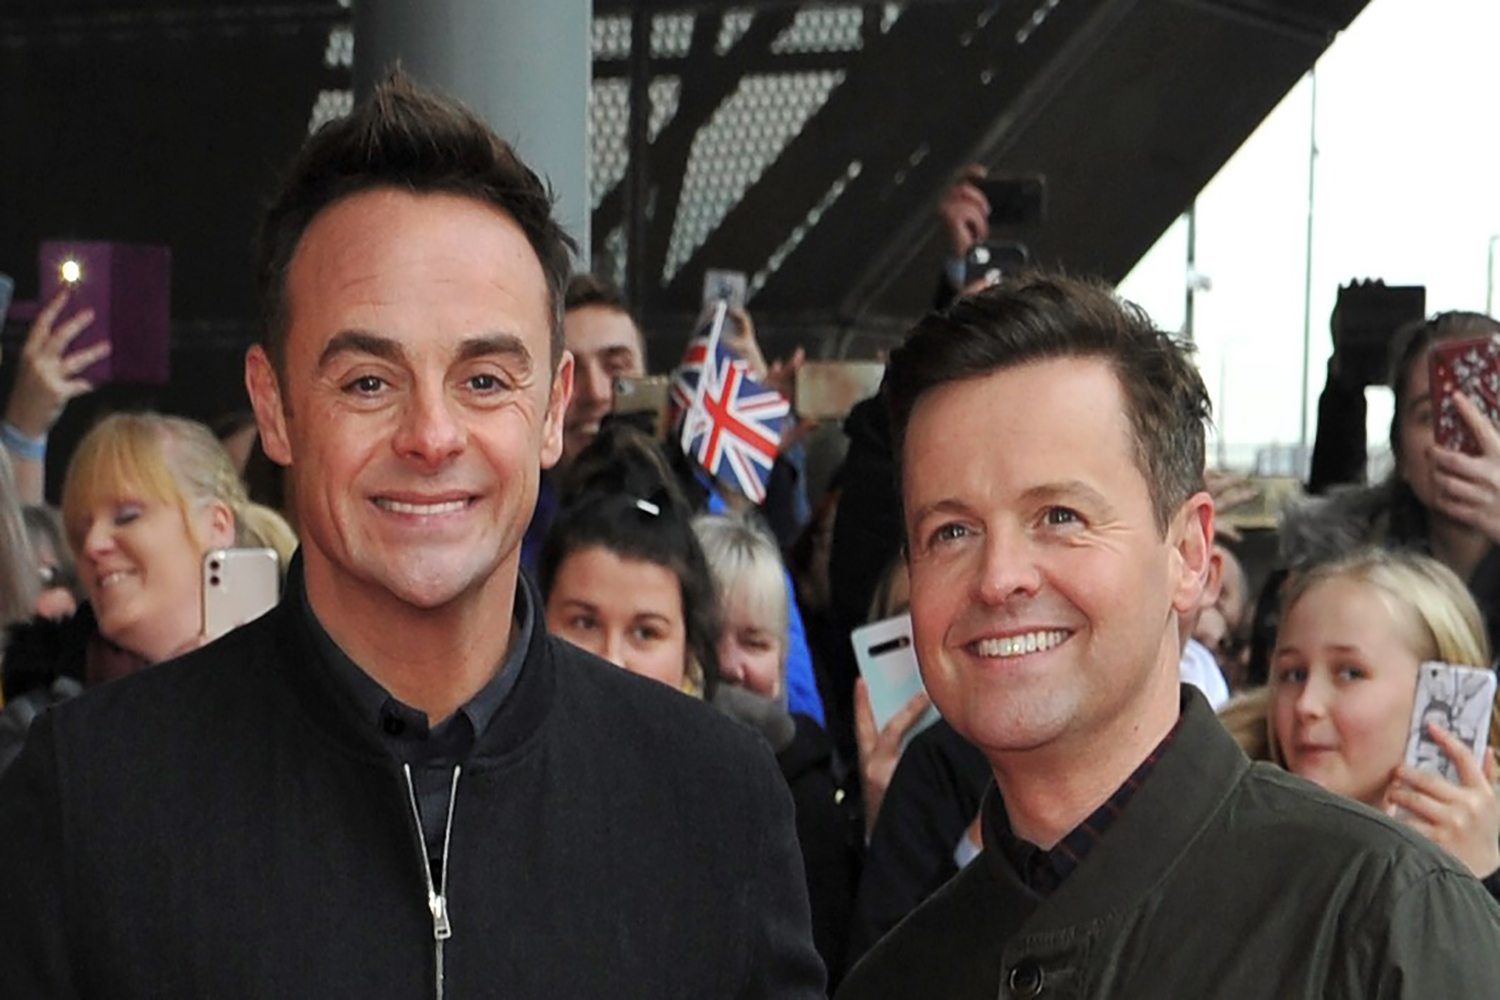 Britain's Got Talent hosts Ant and Dec thank NHS in moving tribute